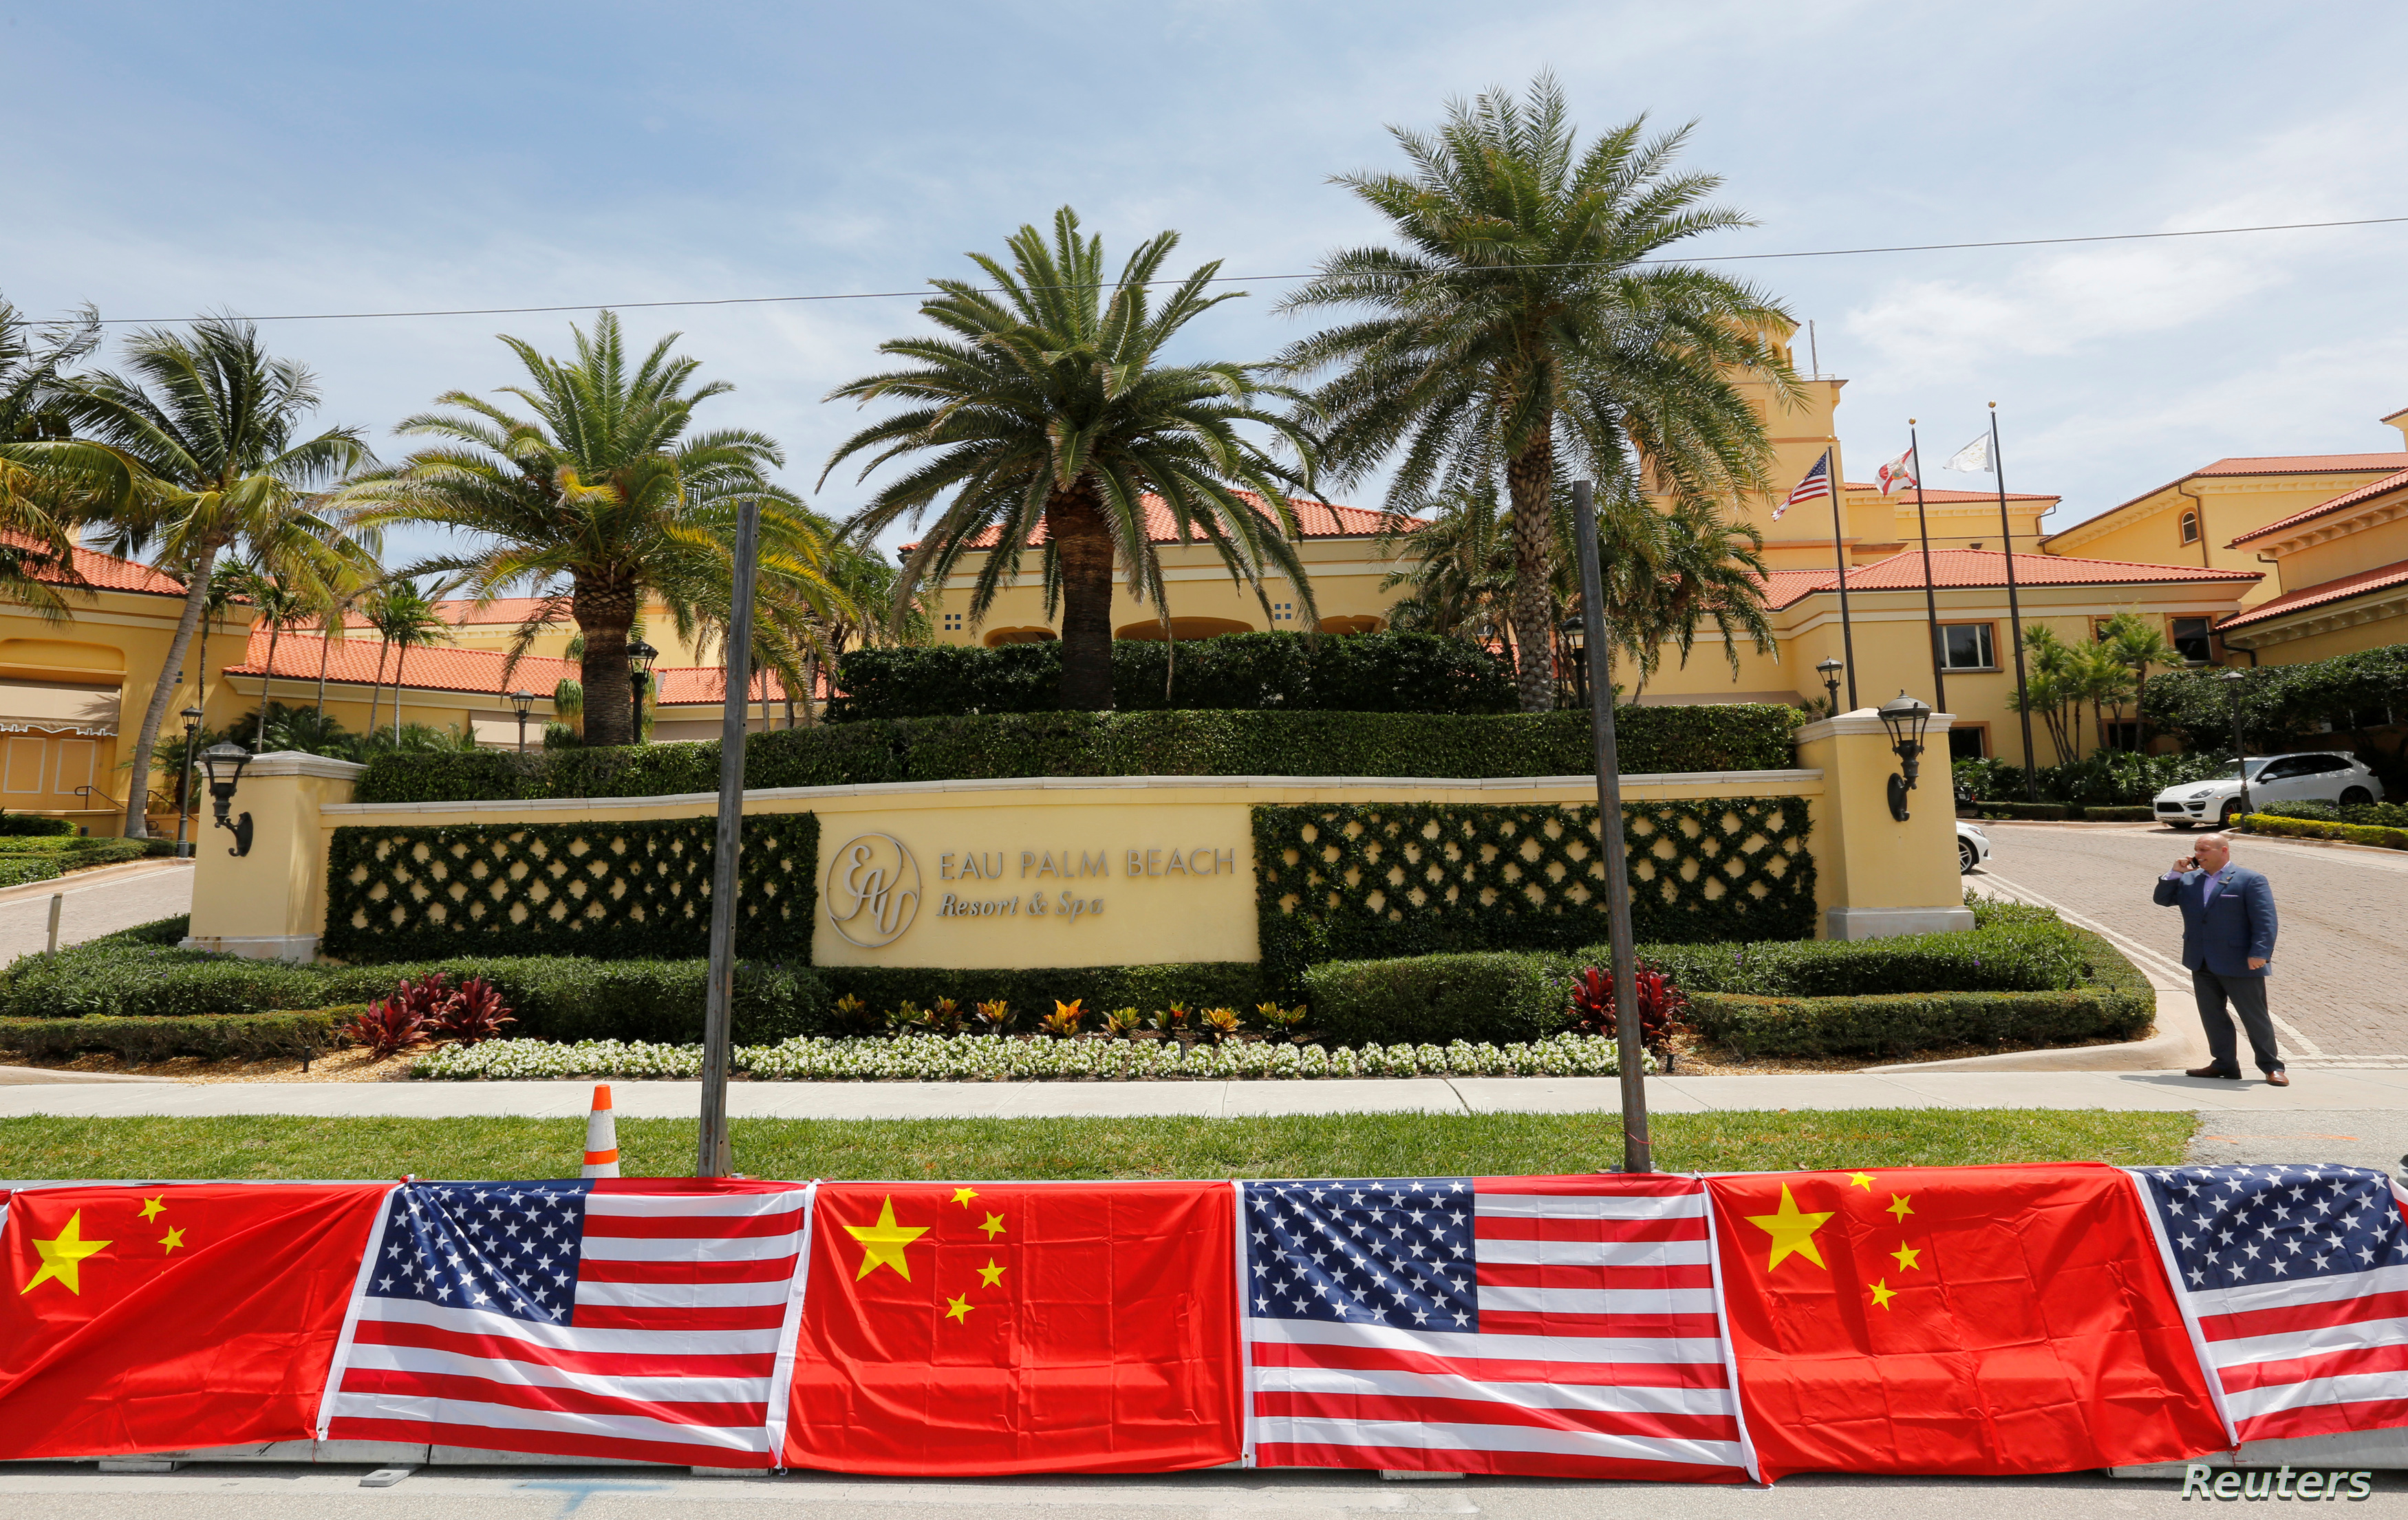 The Eau Palm Beach Resort and Spa where Chinese President Xi Jinping will stay is shown in Manalapan, Florida, April 5, 2017. U.S. President Donald Trump will meet with Xi on April 6 and 7 at his nearby Mar-a-Lago estate.